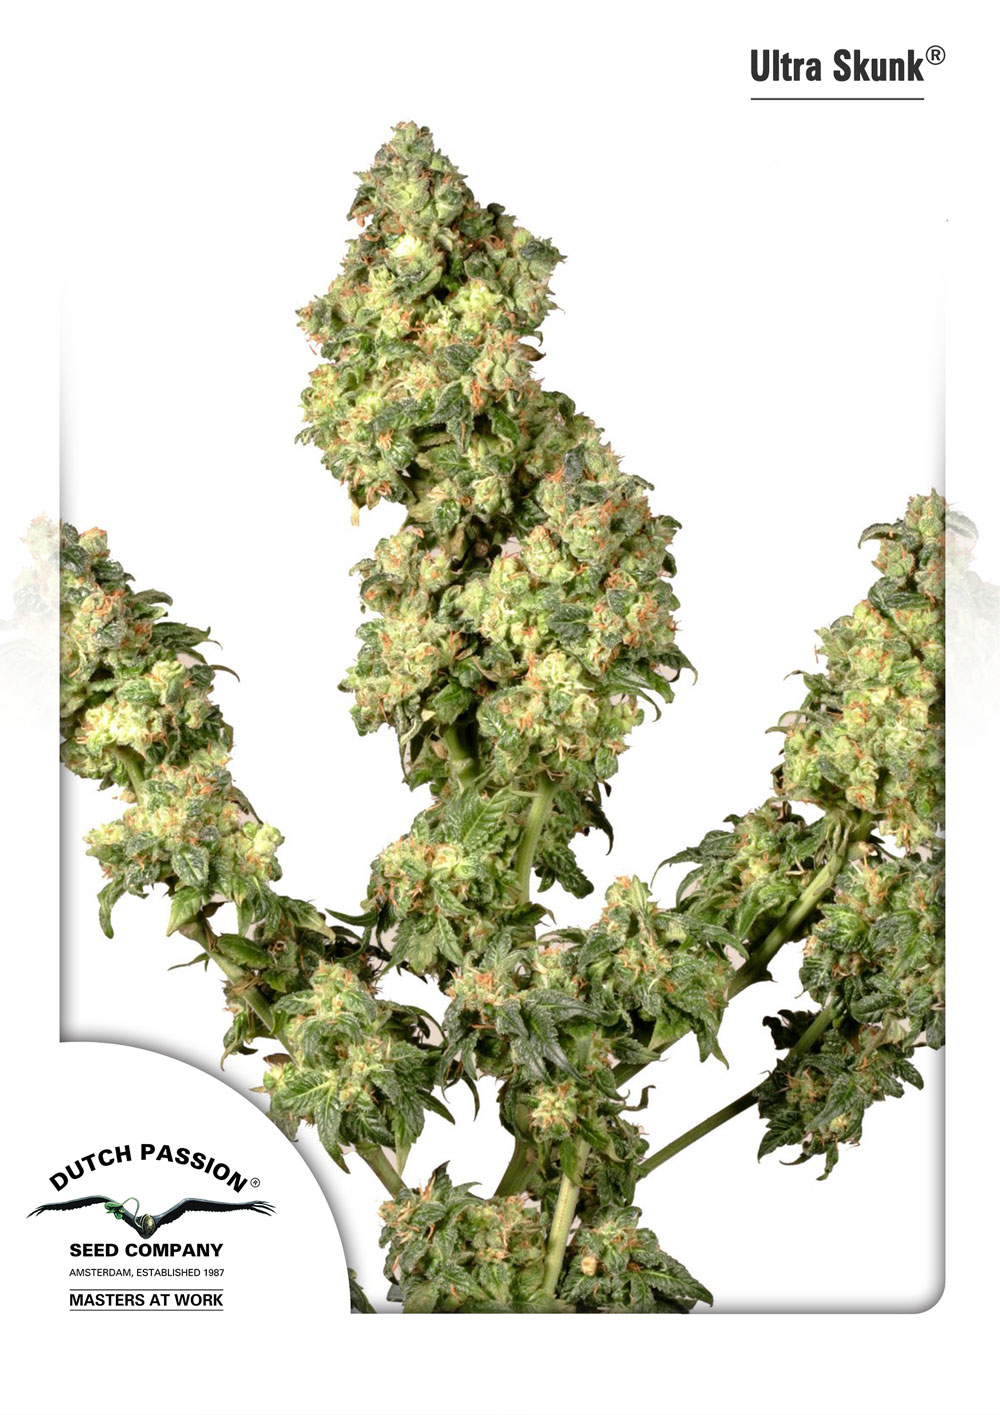 Recenzja Odmiany Ultra Skunk od Dutch Passion, Dutch Seeds